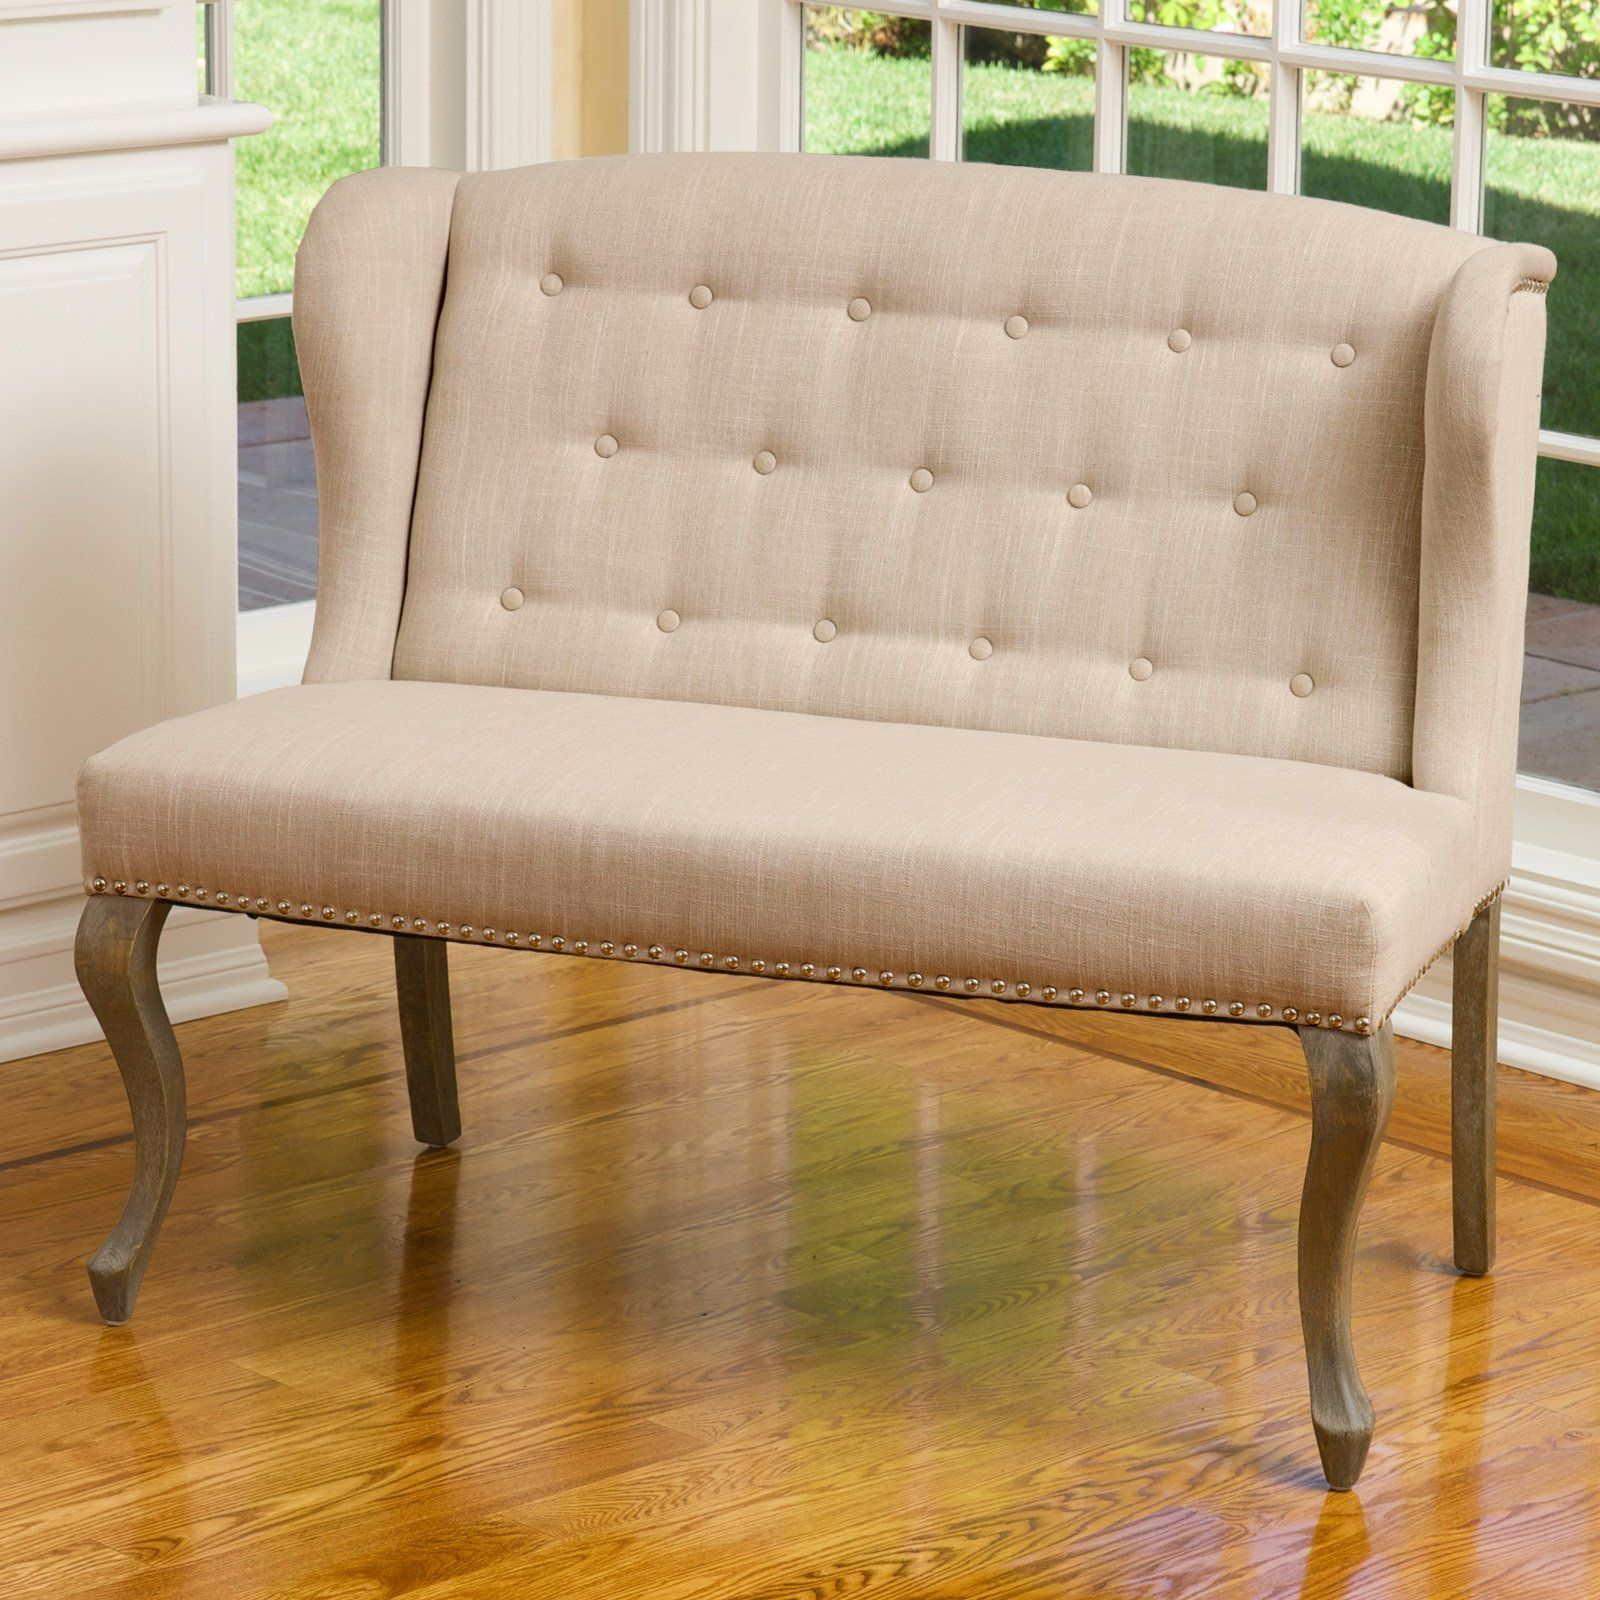 Best Selling Home Emily Wingback Settee Bench   Add A Touch Of Vintage  Romance To Your